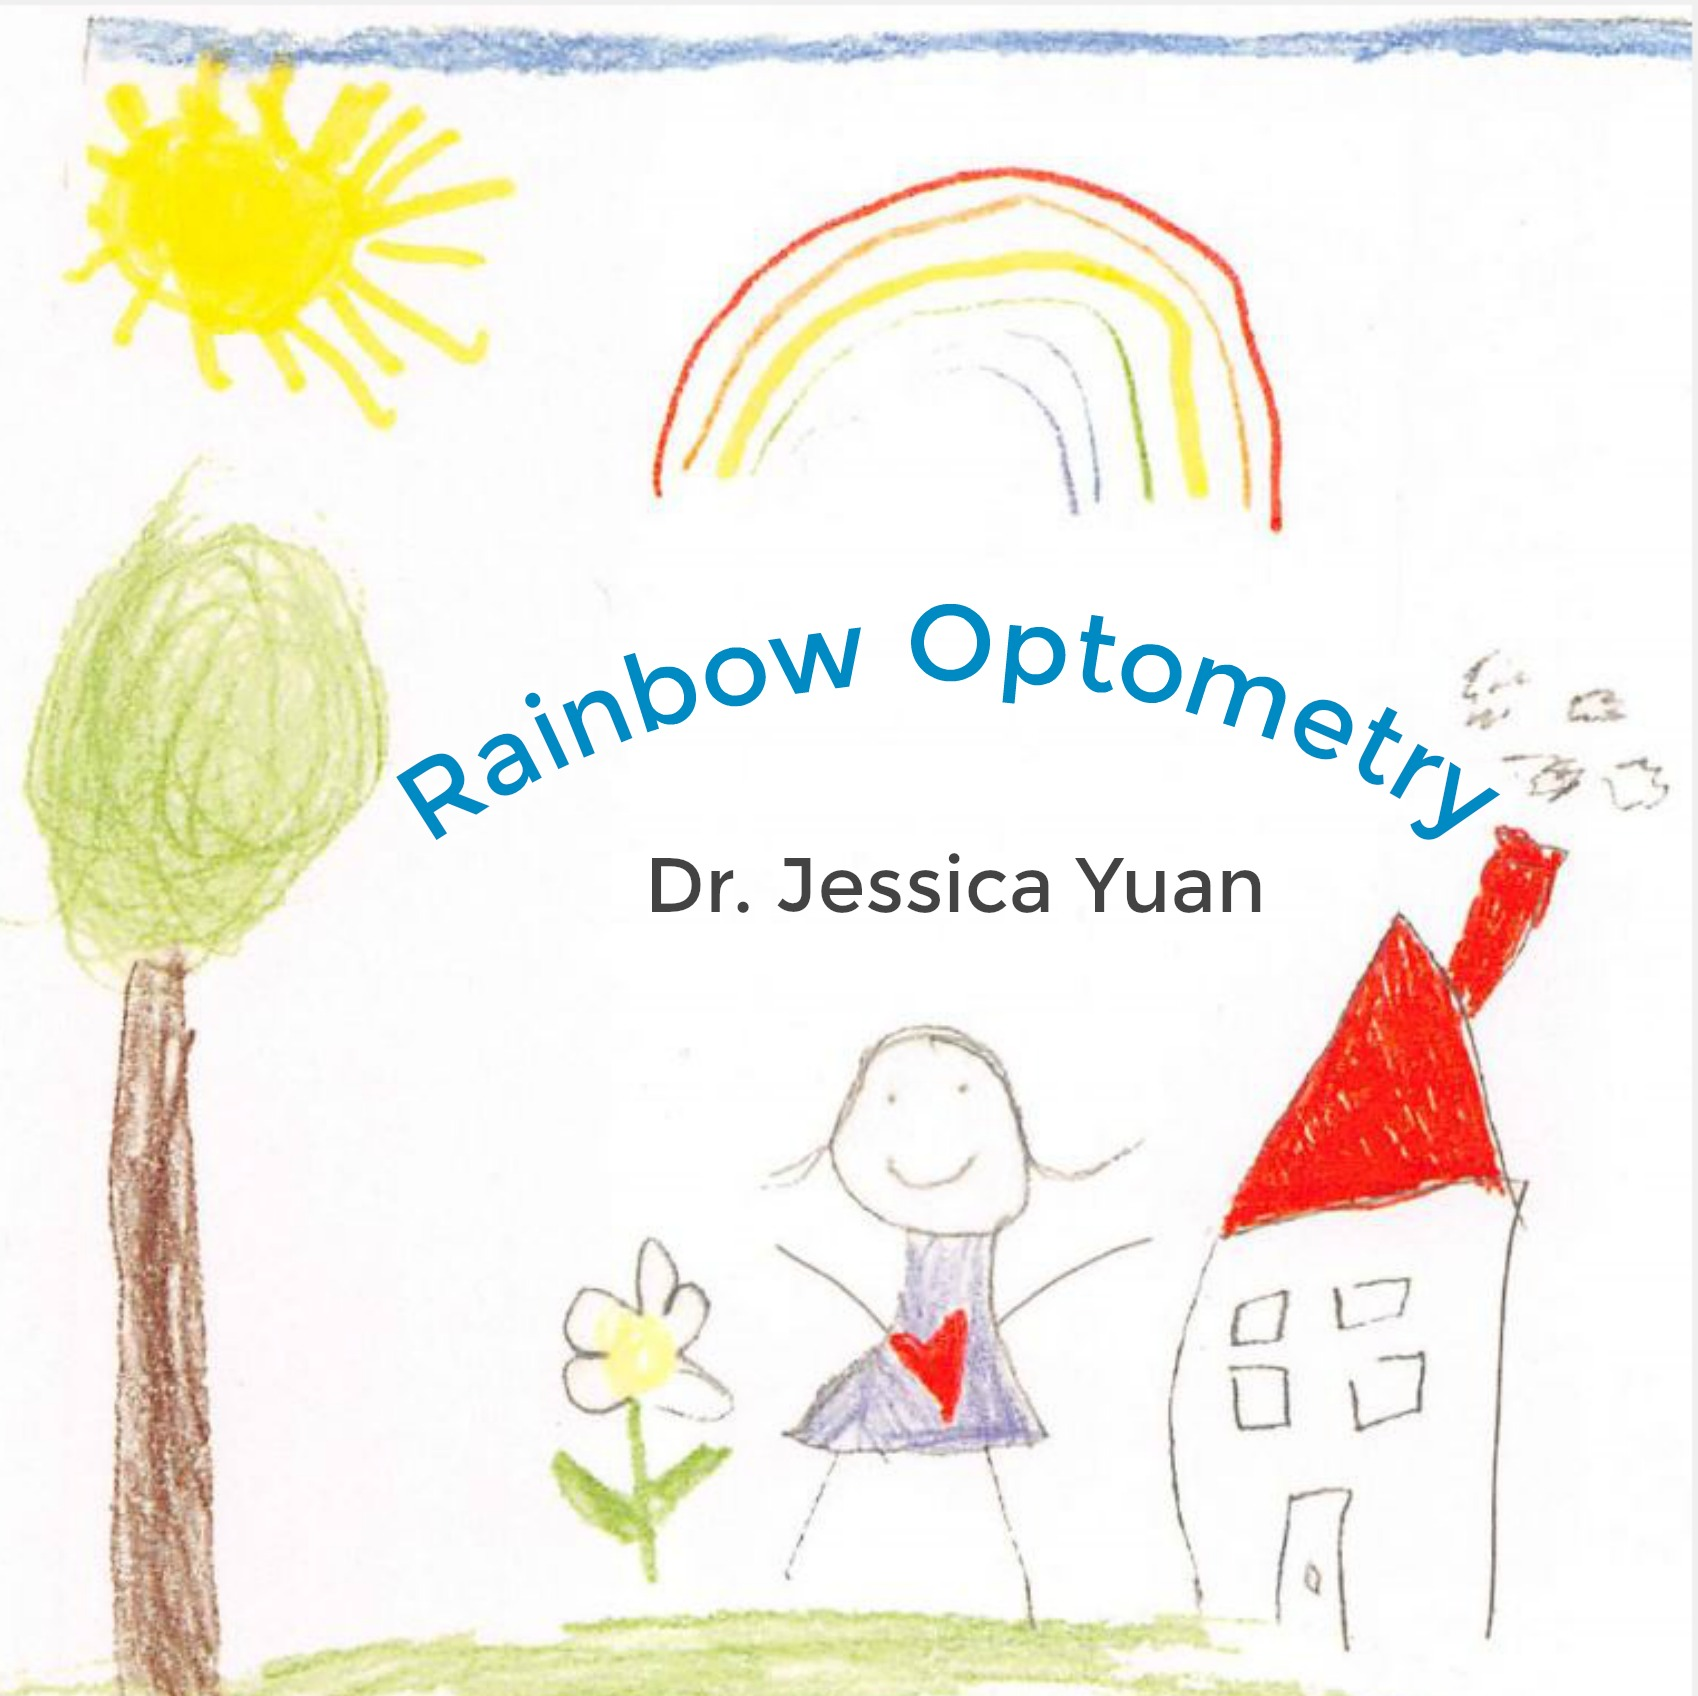 Rainbow Optometry